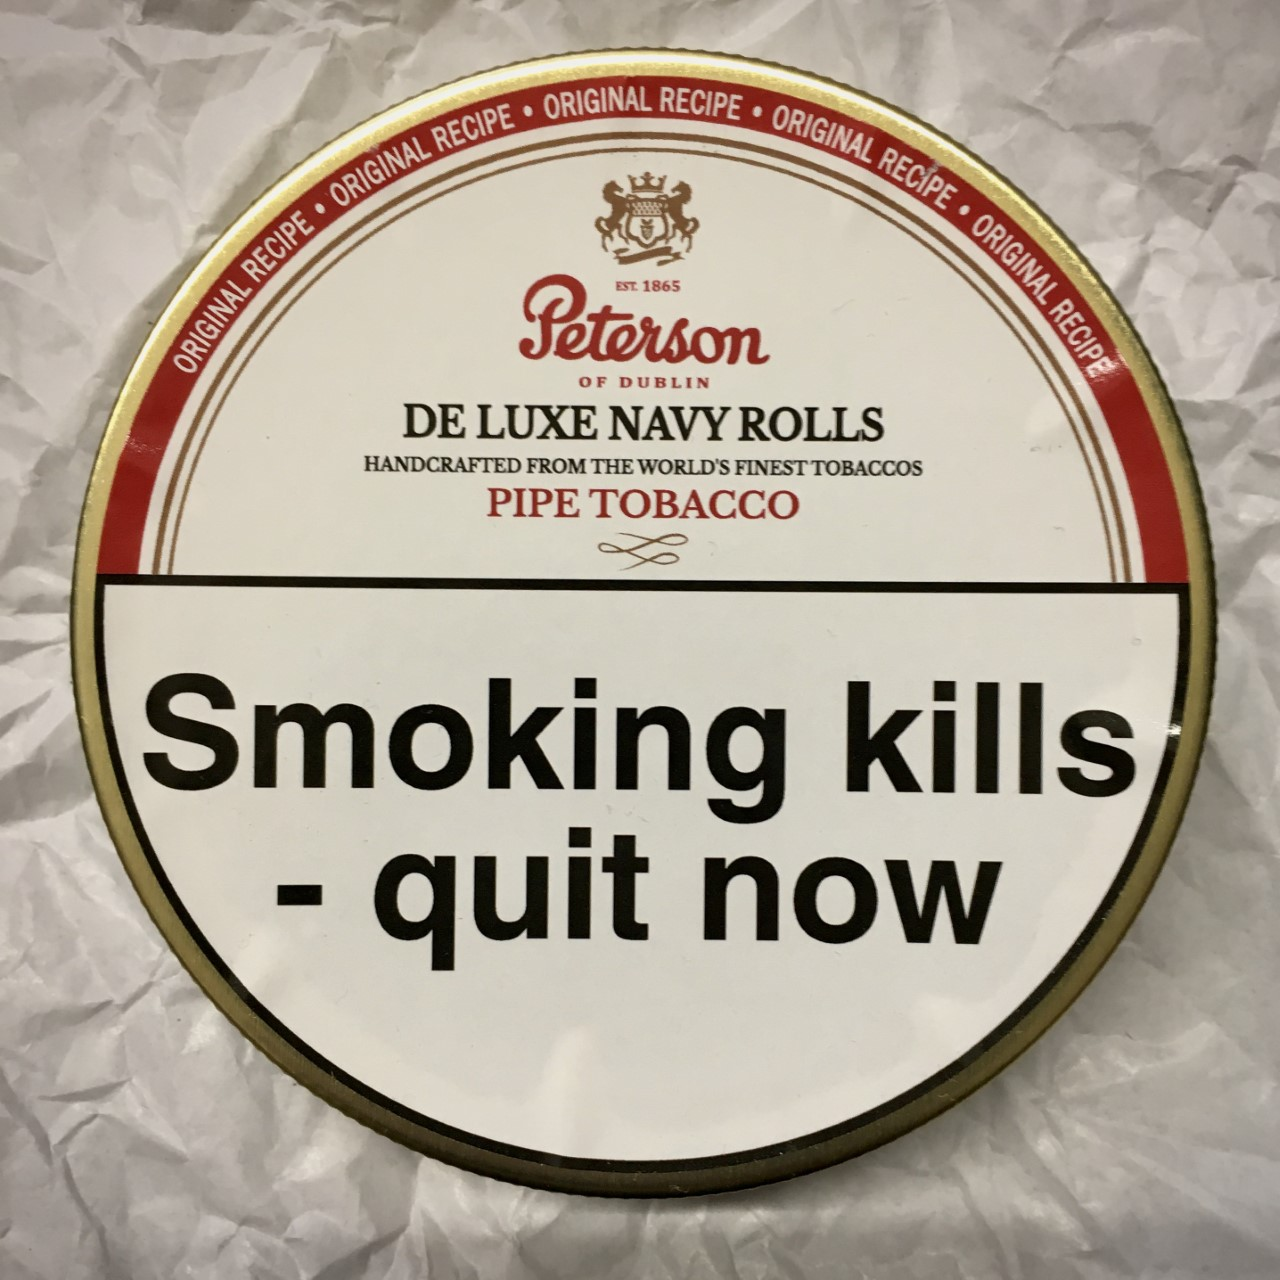 Peterson De Luxe Navy Rolls Pipe Tobacco - 50g Tin